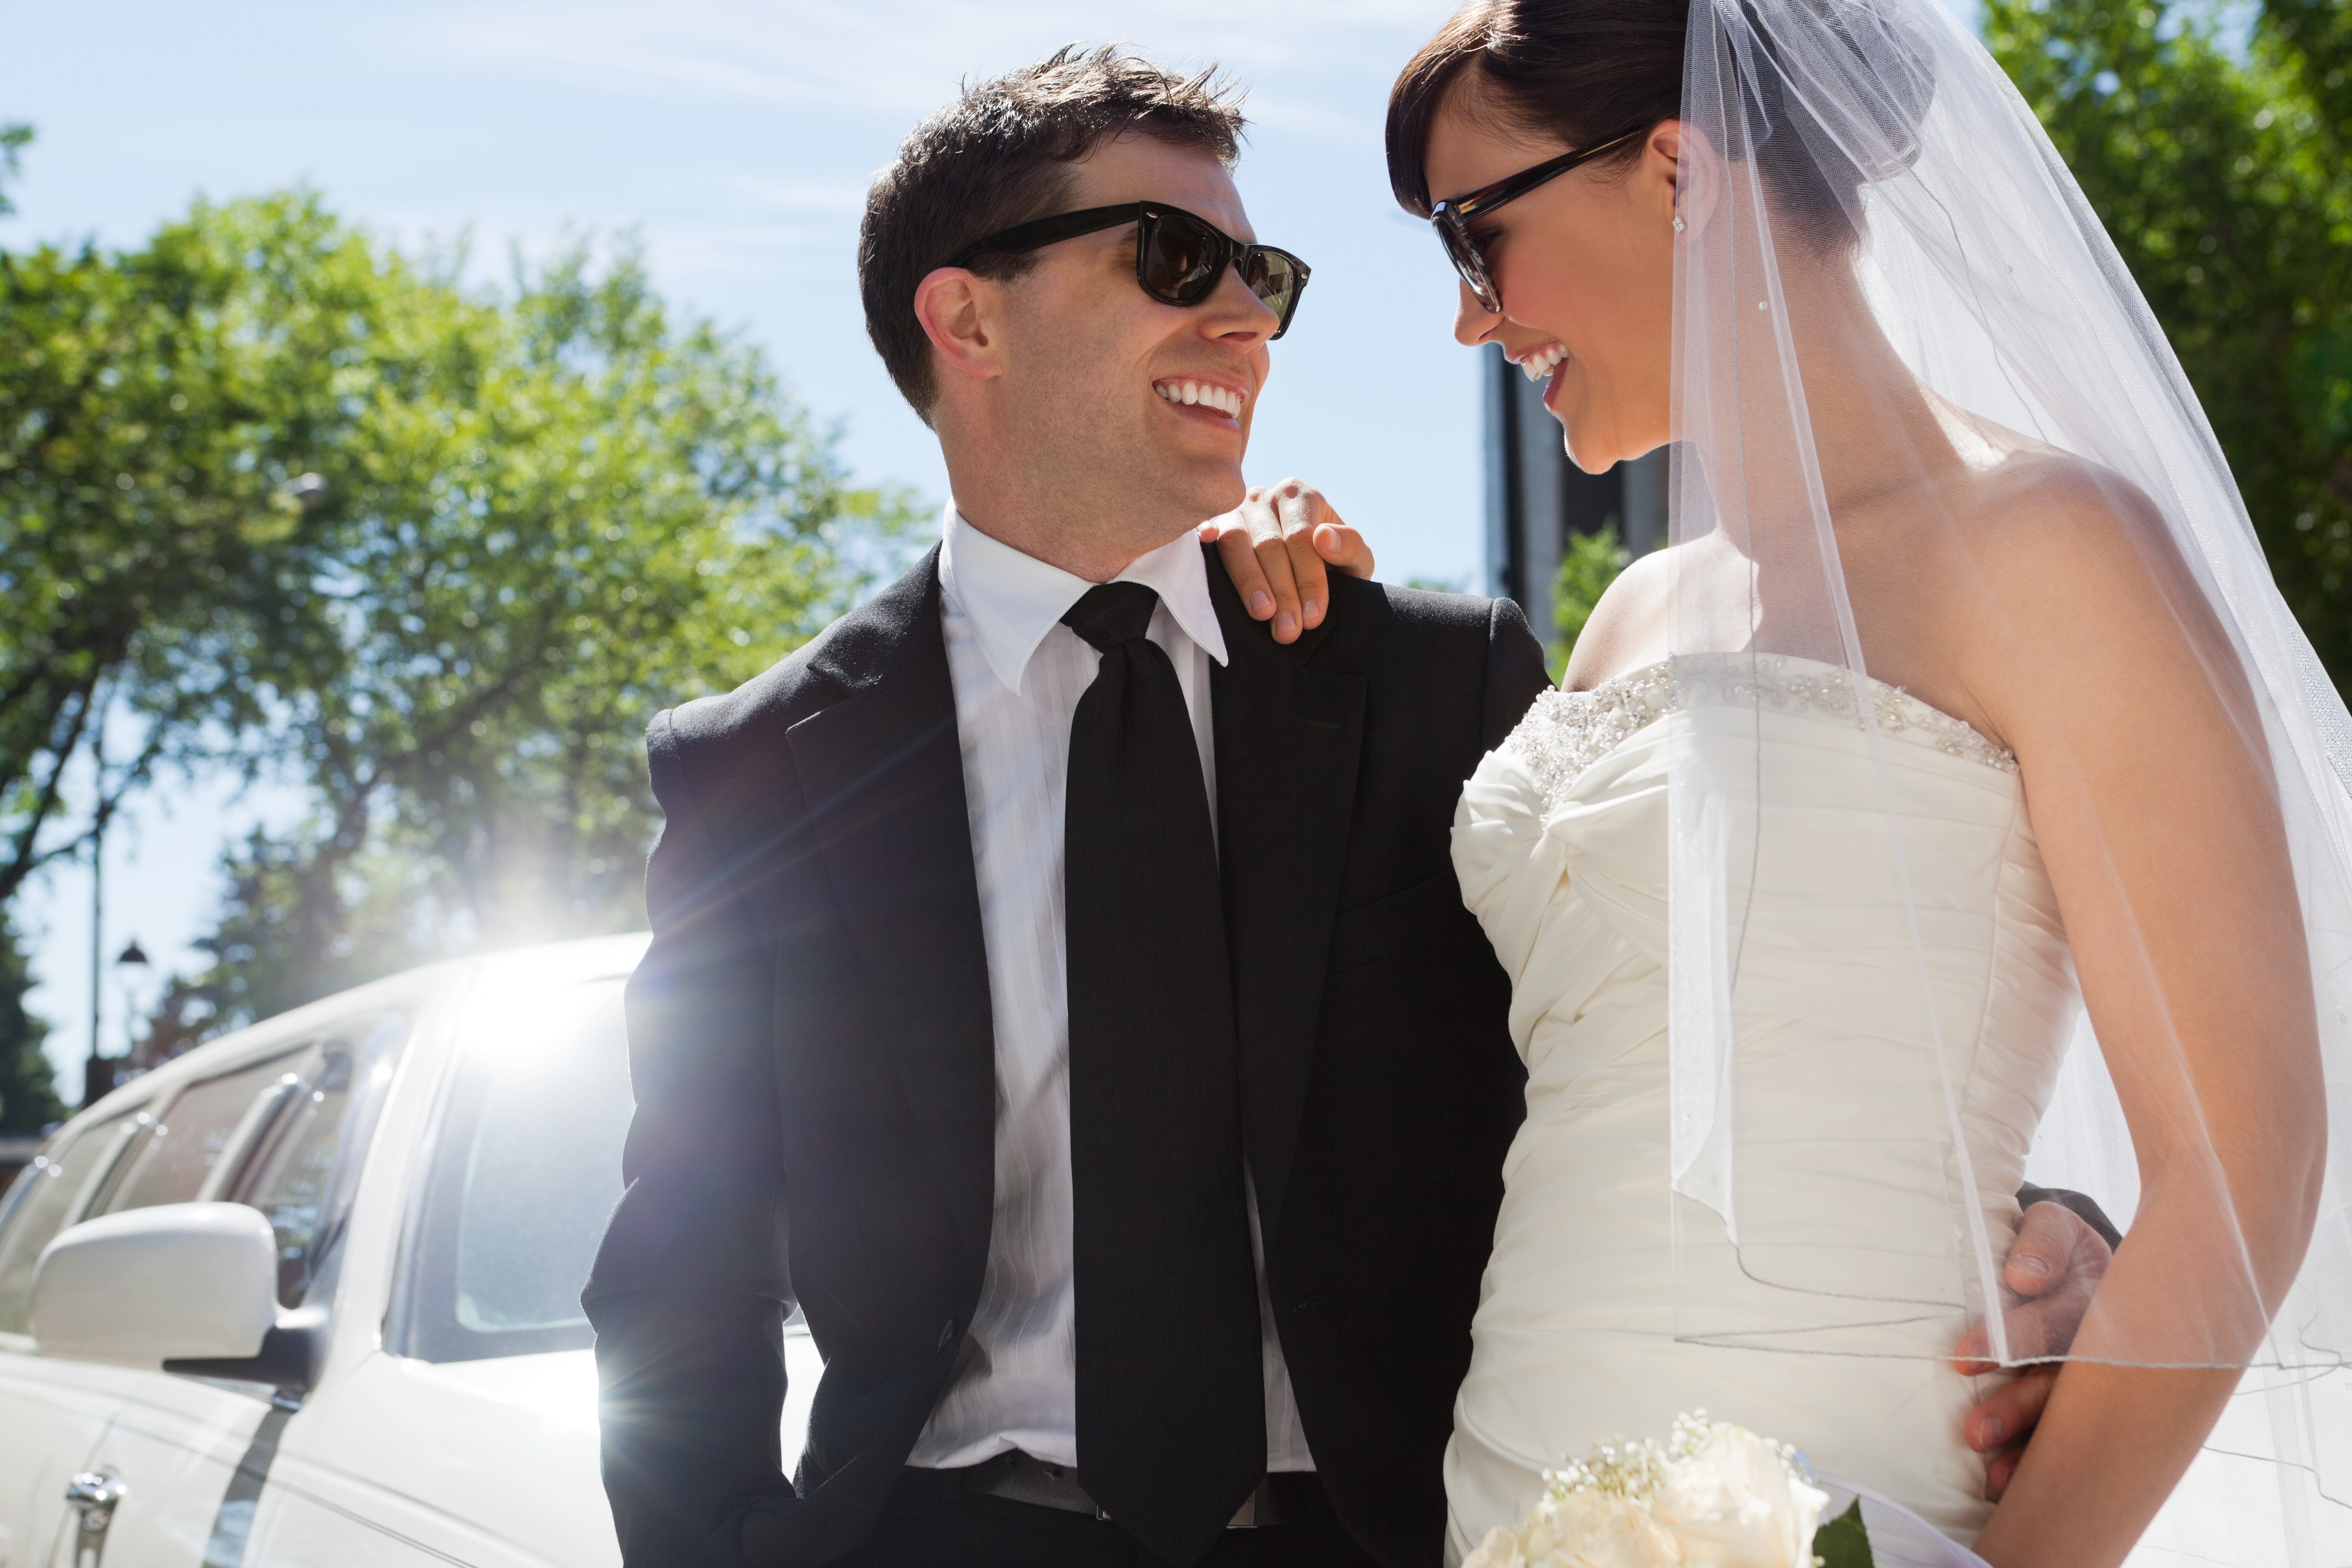 Beat The Heat: Summer Wedding Tips From Local Experts